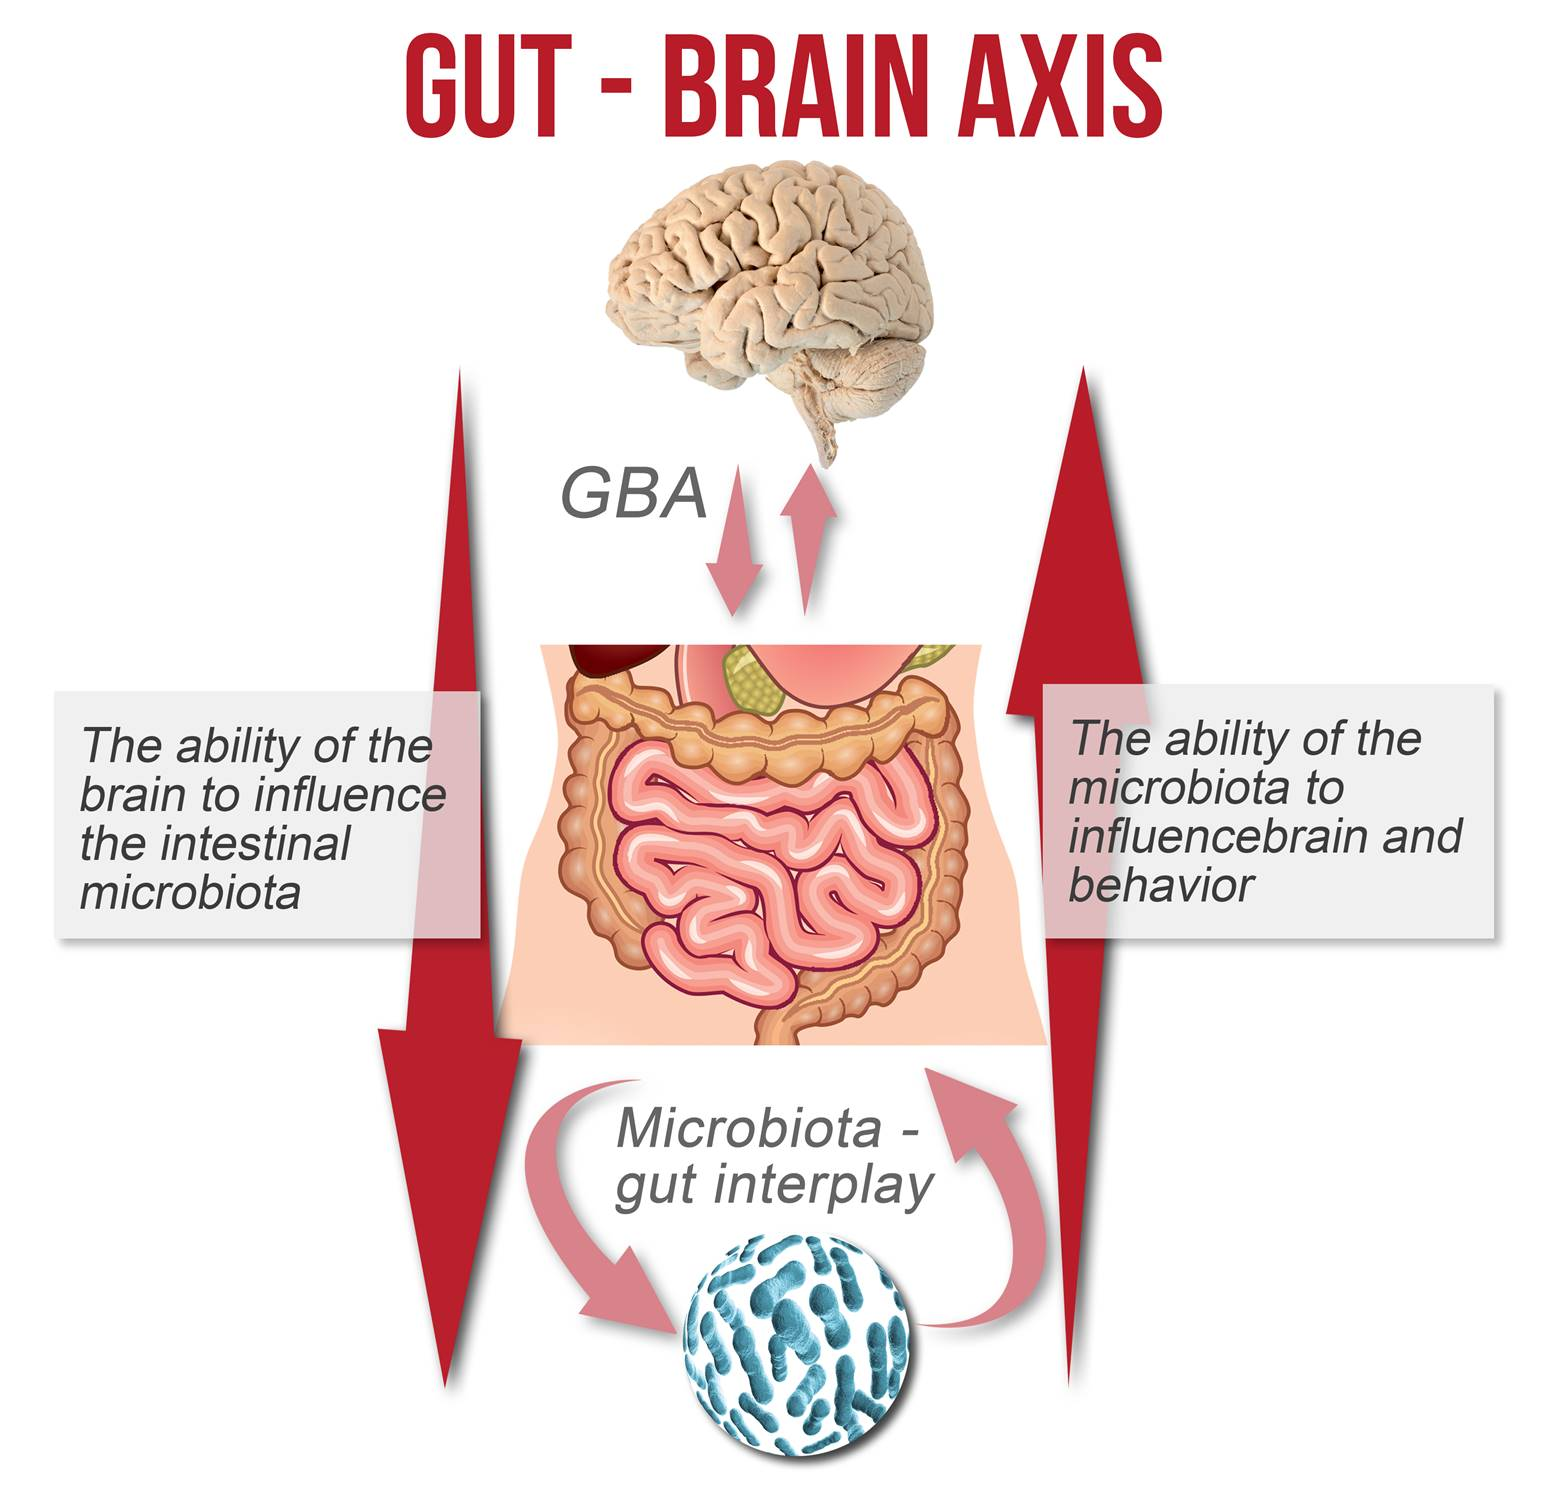 When Gut Bacteria Change Brain Function >> Intestinal Bacteria Alter Gut And Brain Function Science Mission